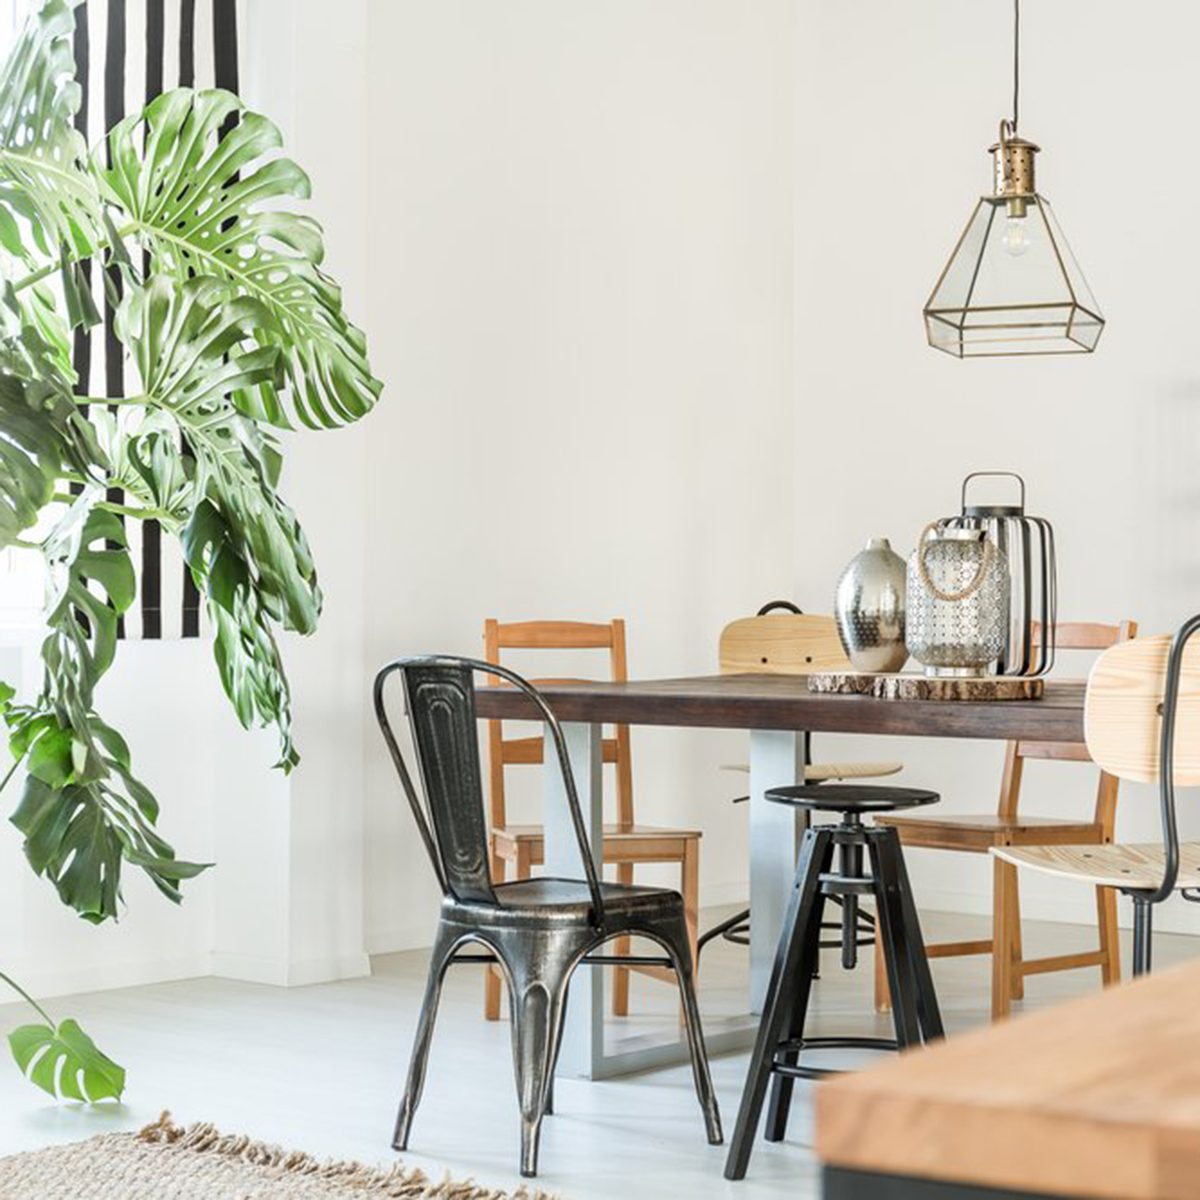 Kitchen with plants and wooden chairs